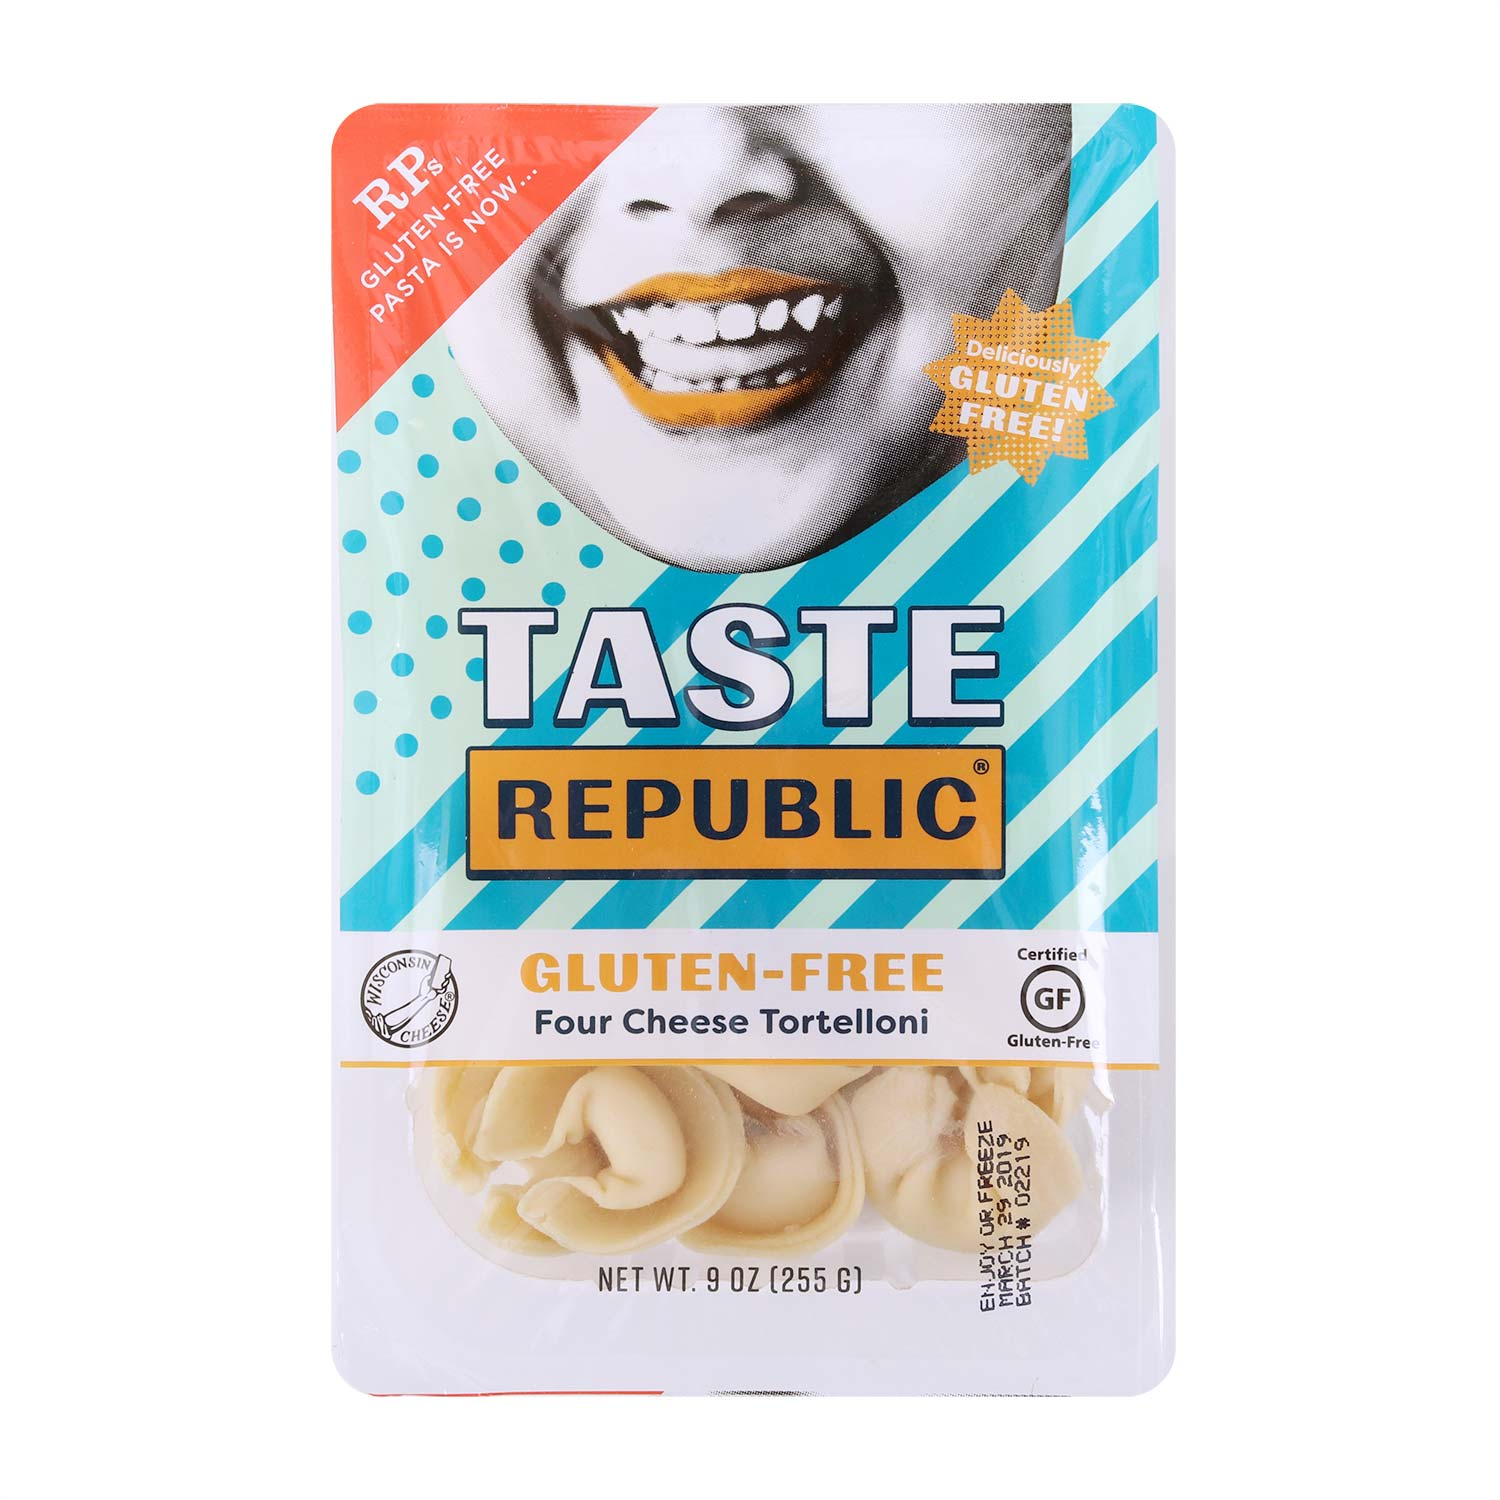 Taste Republic - Four Cheese Tortelloni, Gluten Free